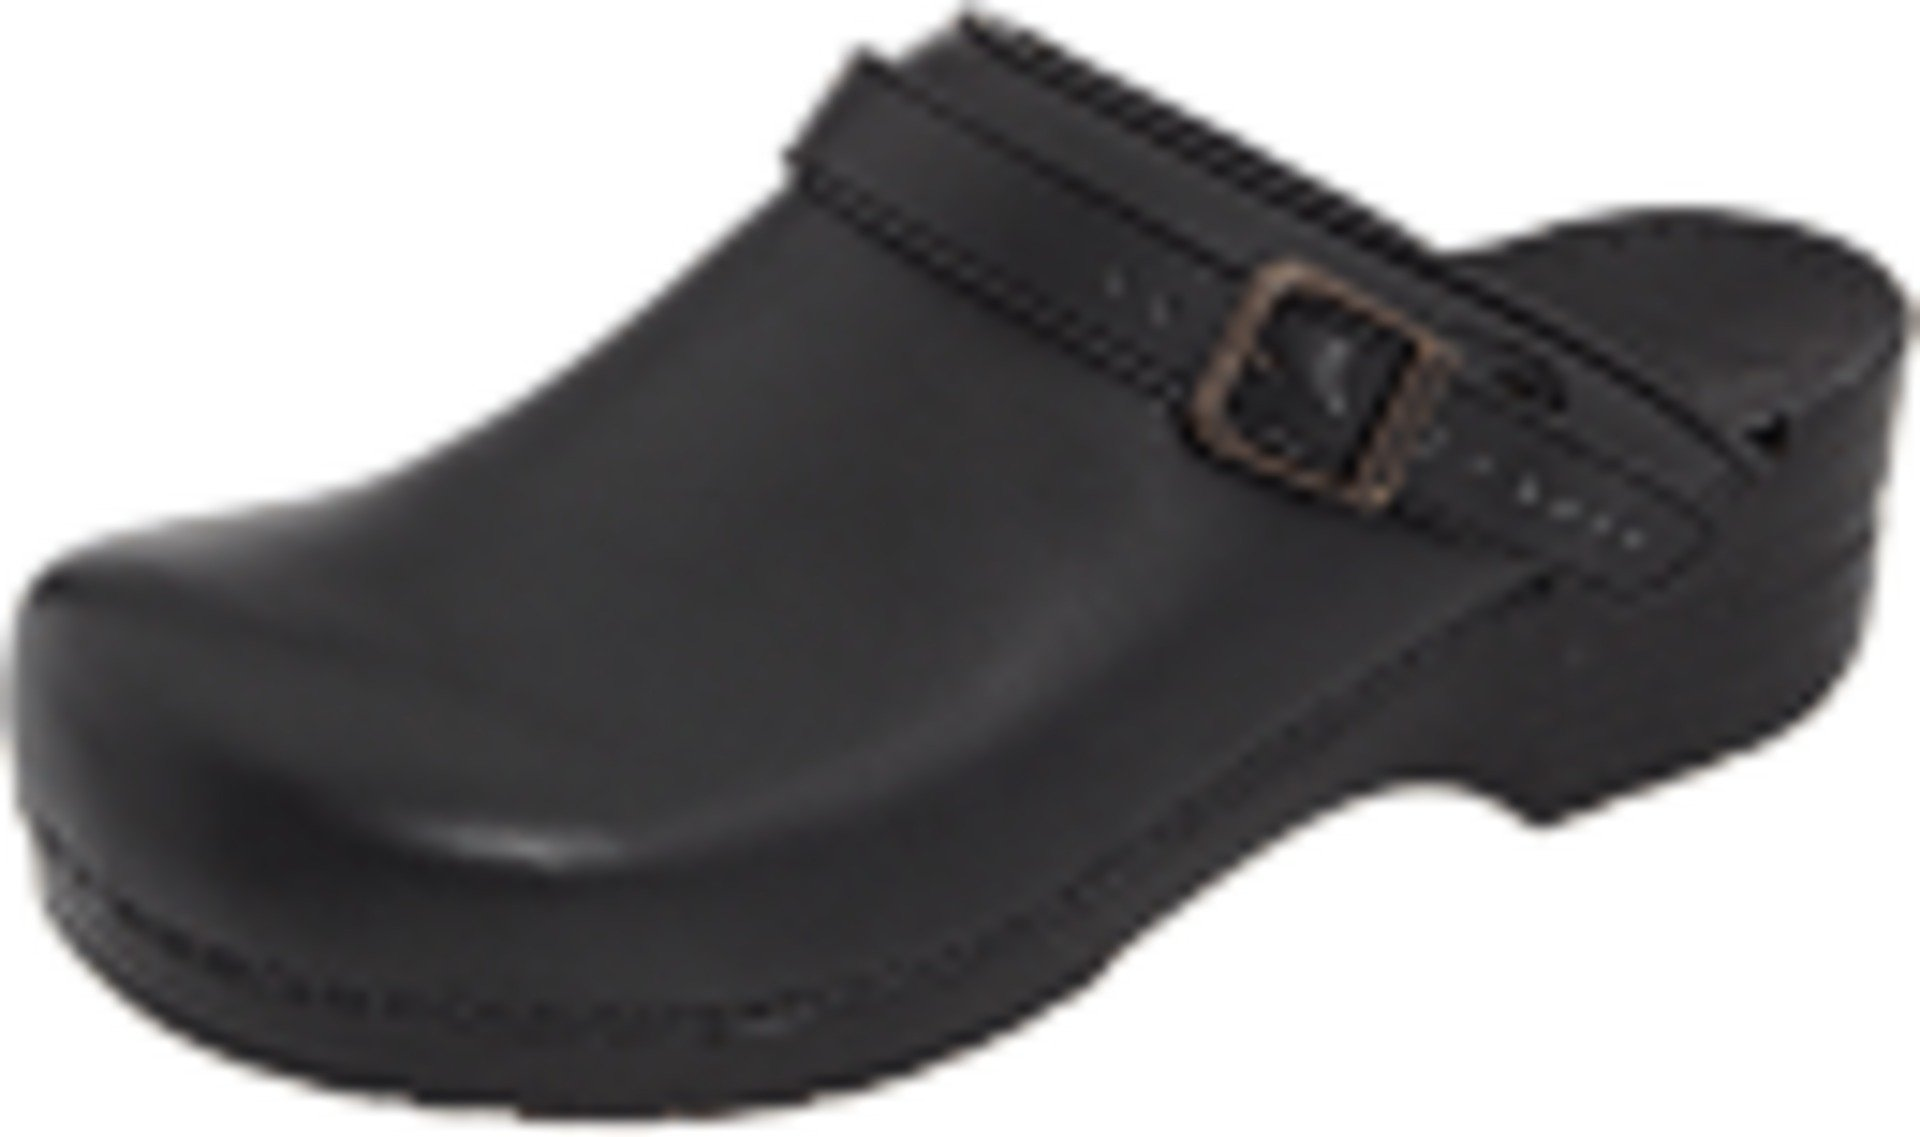 Dansko Shoes Womens Clogs Ingrid Leather Stability 35 Black 38020202